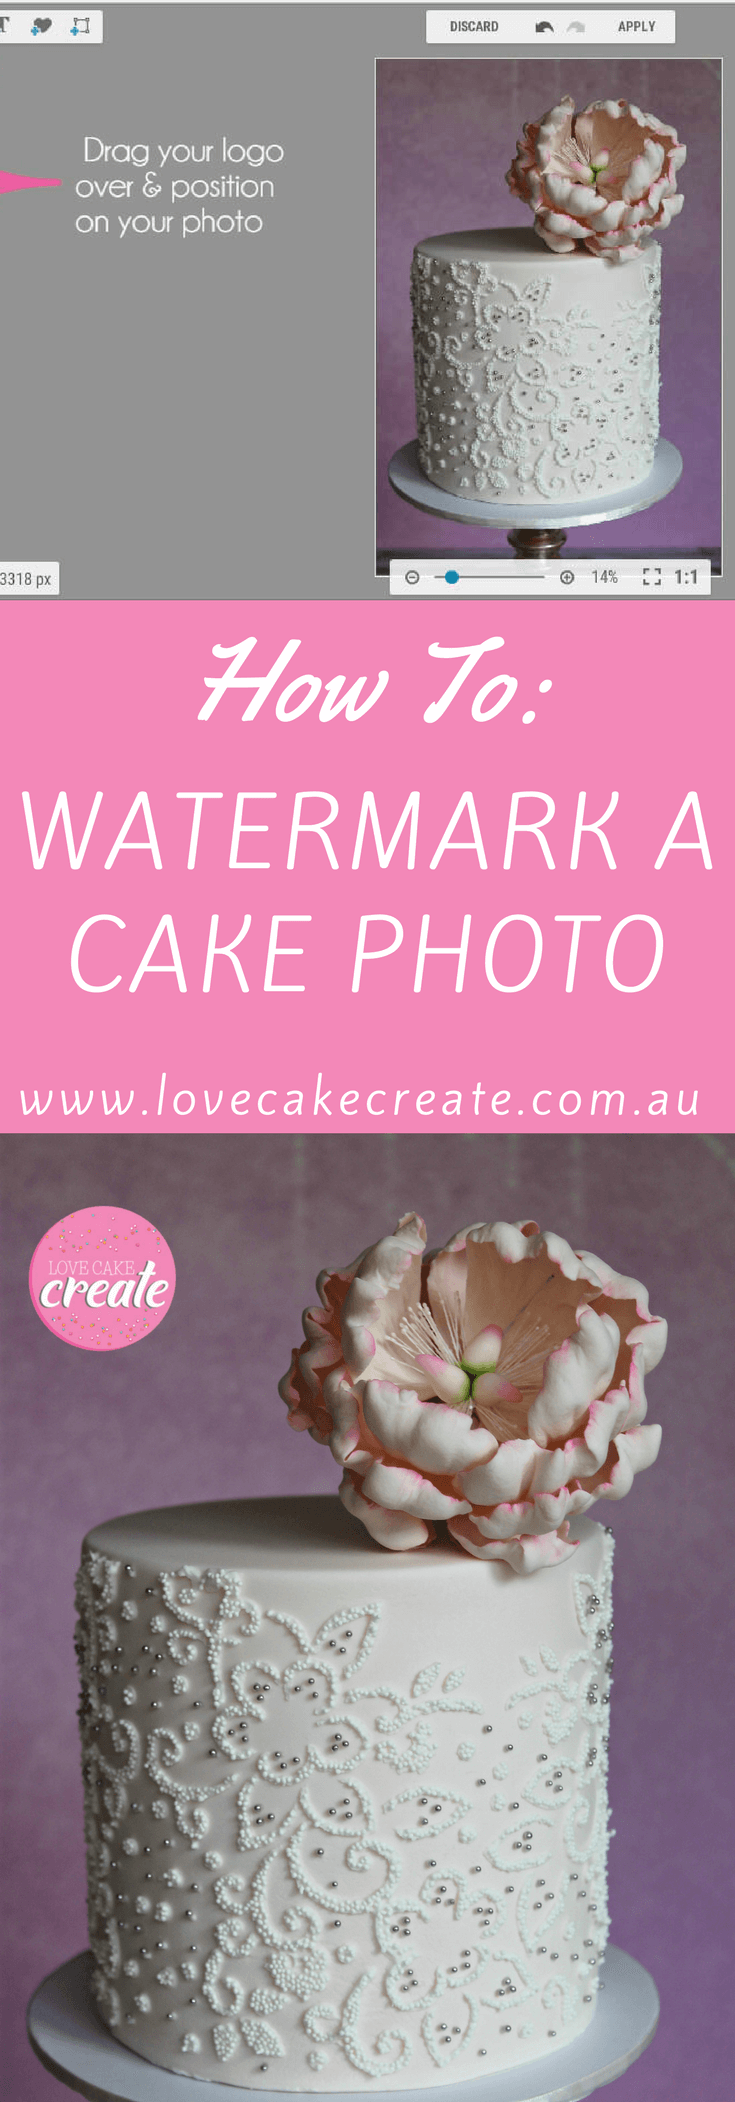 How to watermark your cake photo - by Love Cake Create